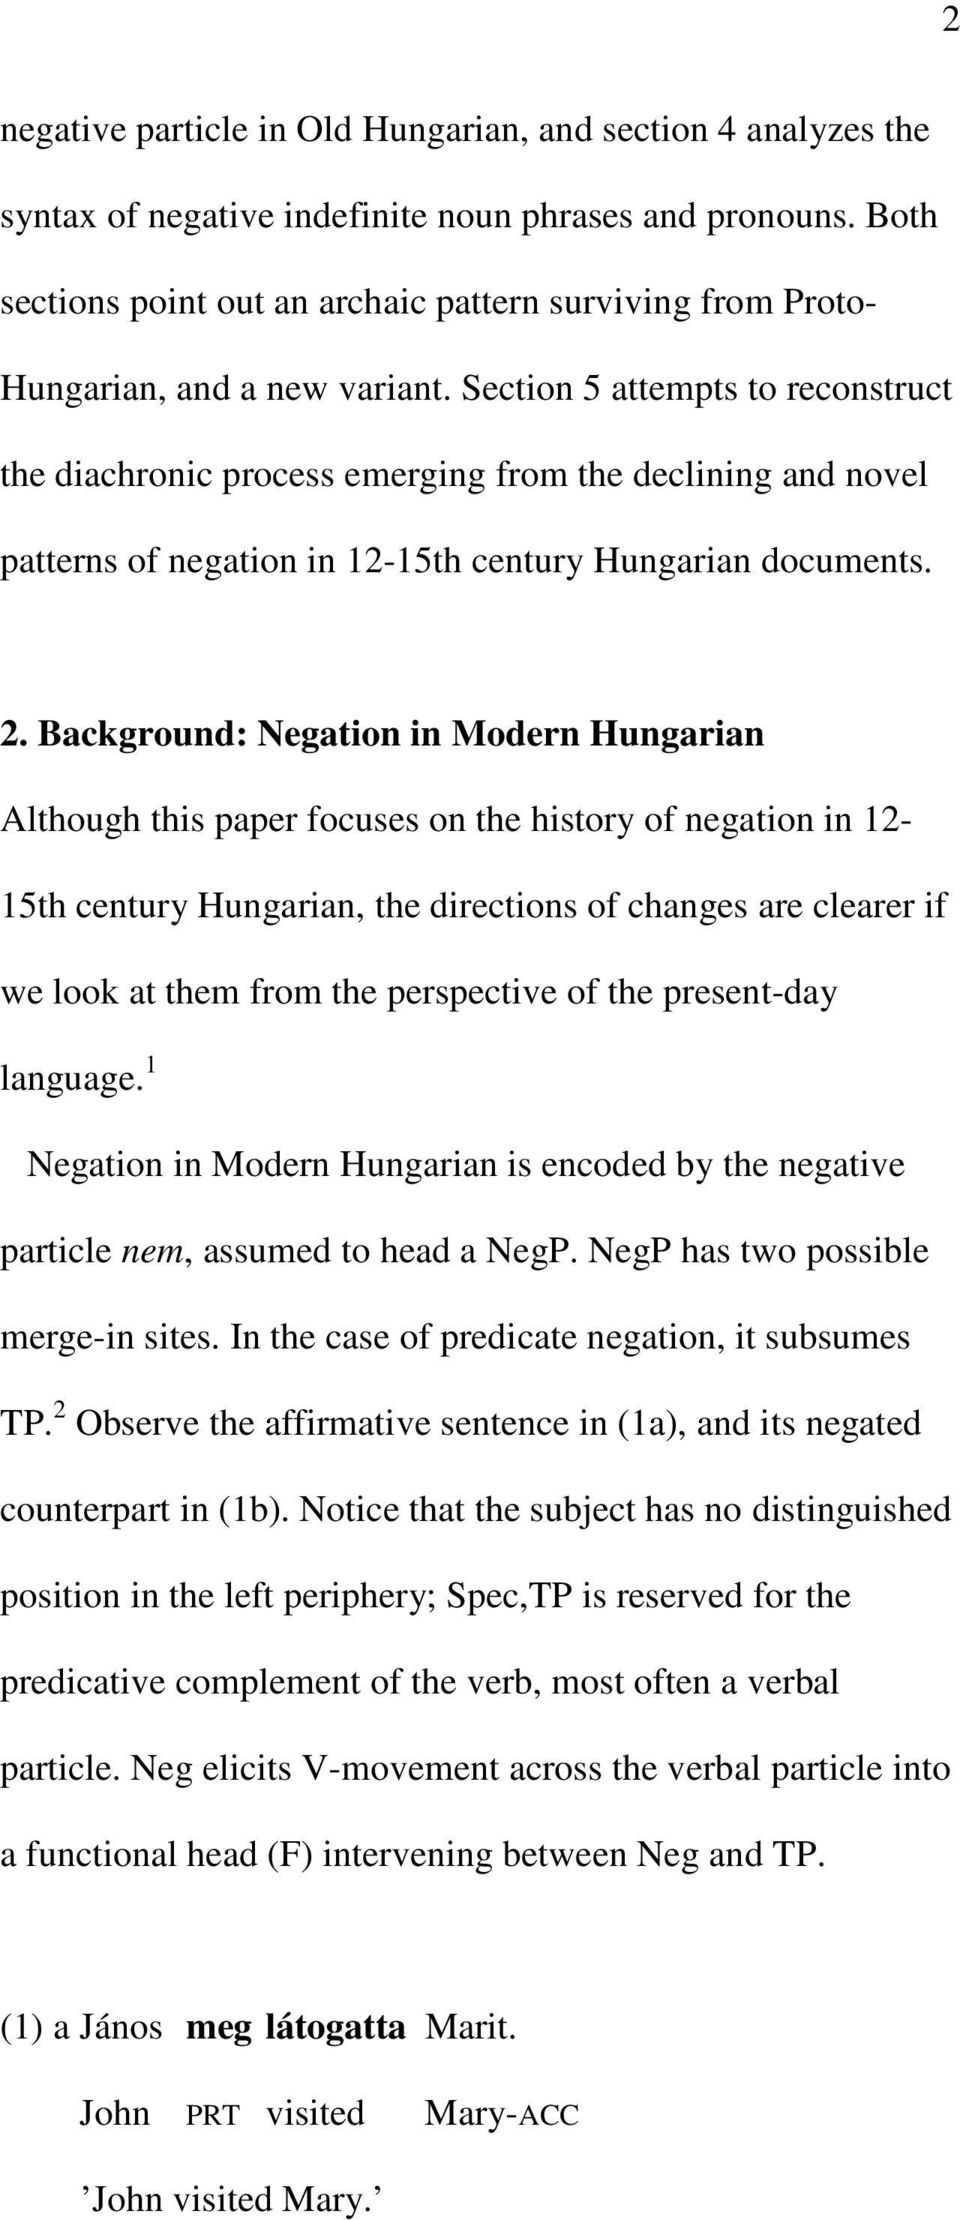 Section 5 attempts to reconstruct the diachronic process emerging from the declining and novel patterns of negation in 12-15th century Hungarian documents. 2.